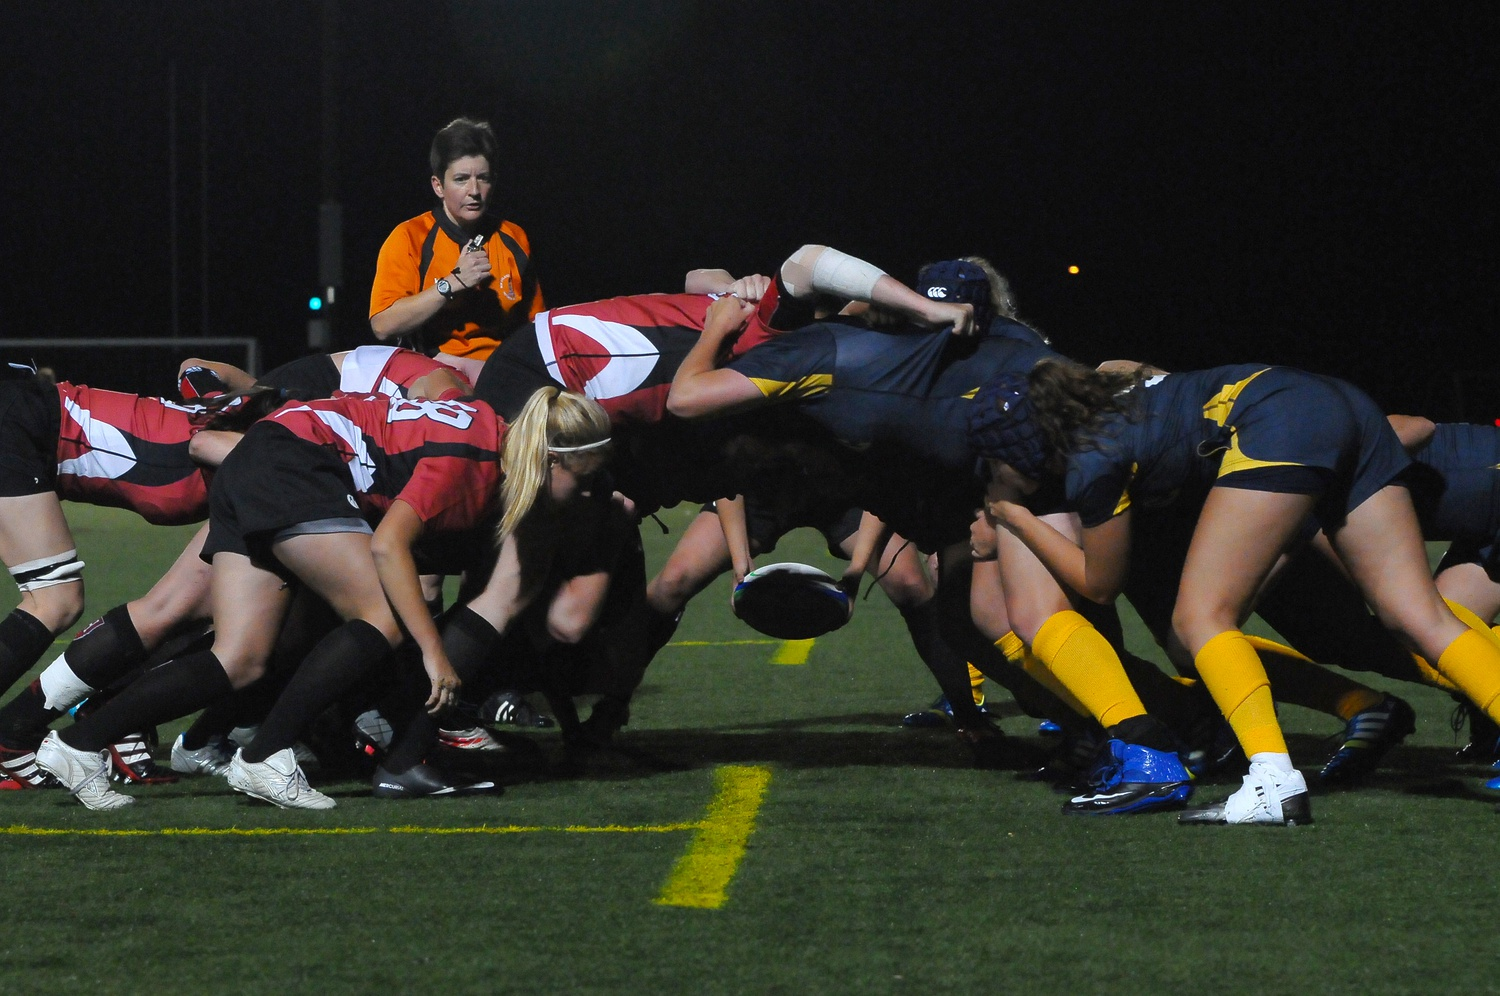 Radcliffe Rugby, Harvard's 42nd varsity sports team, faces Quinnipiac University on September 17th in the first game of their varsity career.